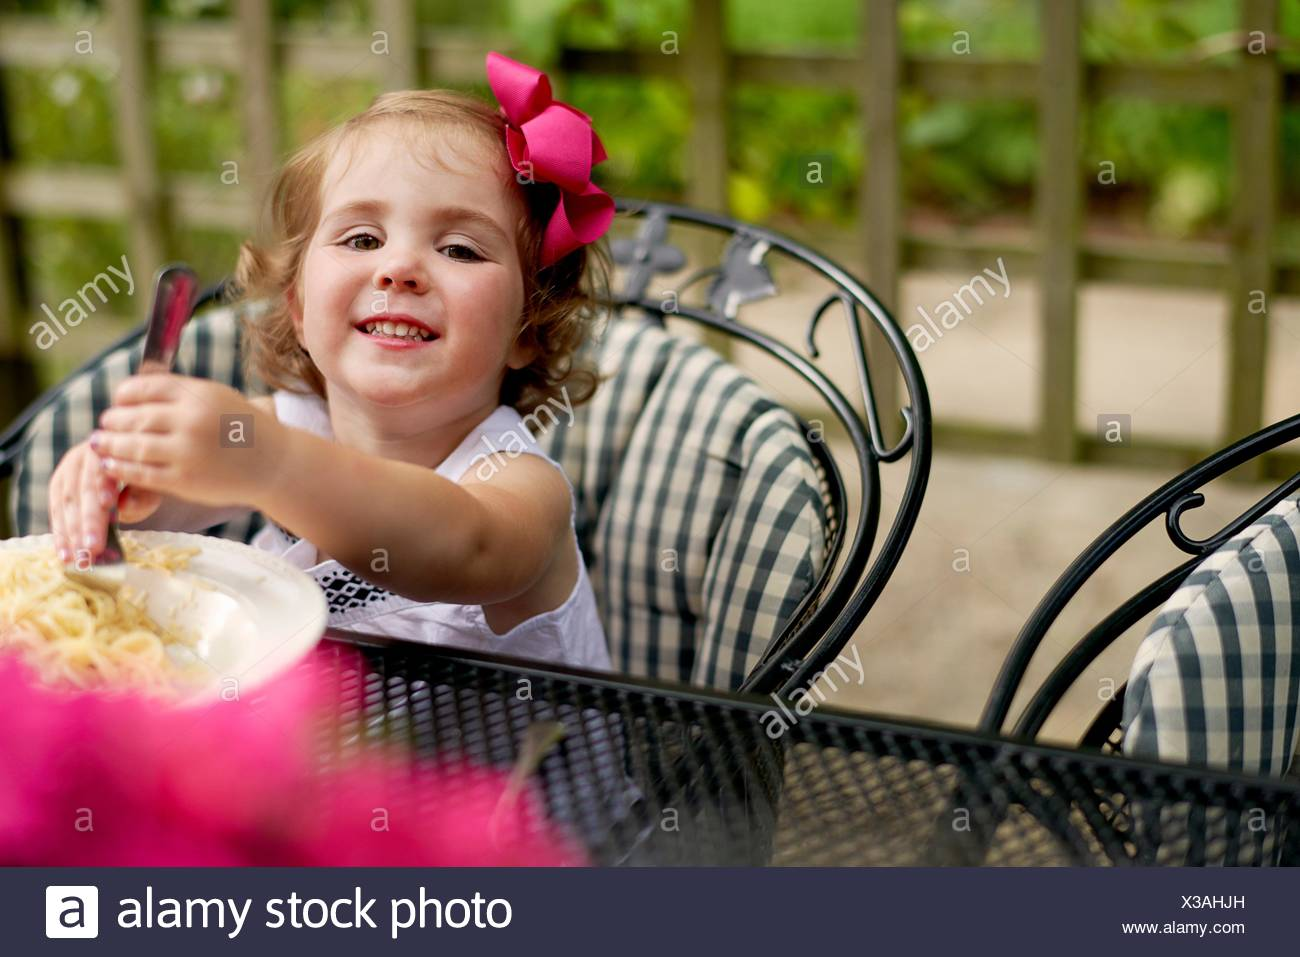 Au jardin, table de salle à manger girl looking at camera smiling Photo Stock